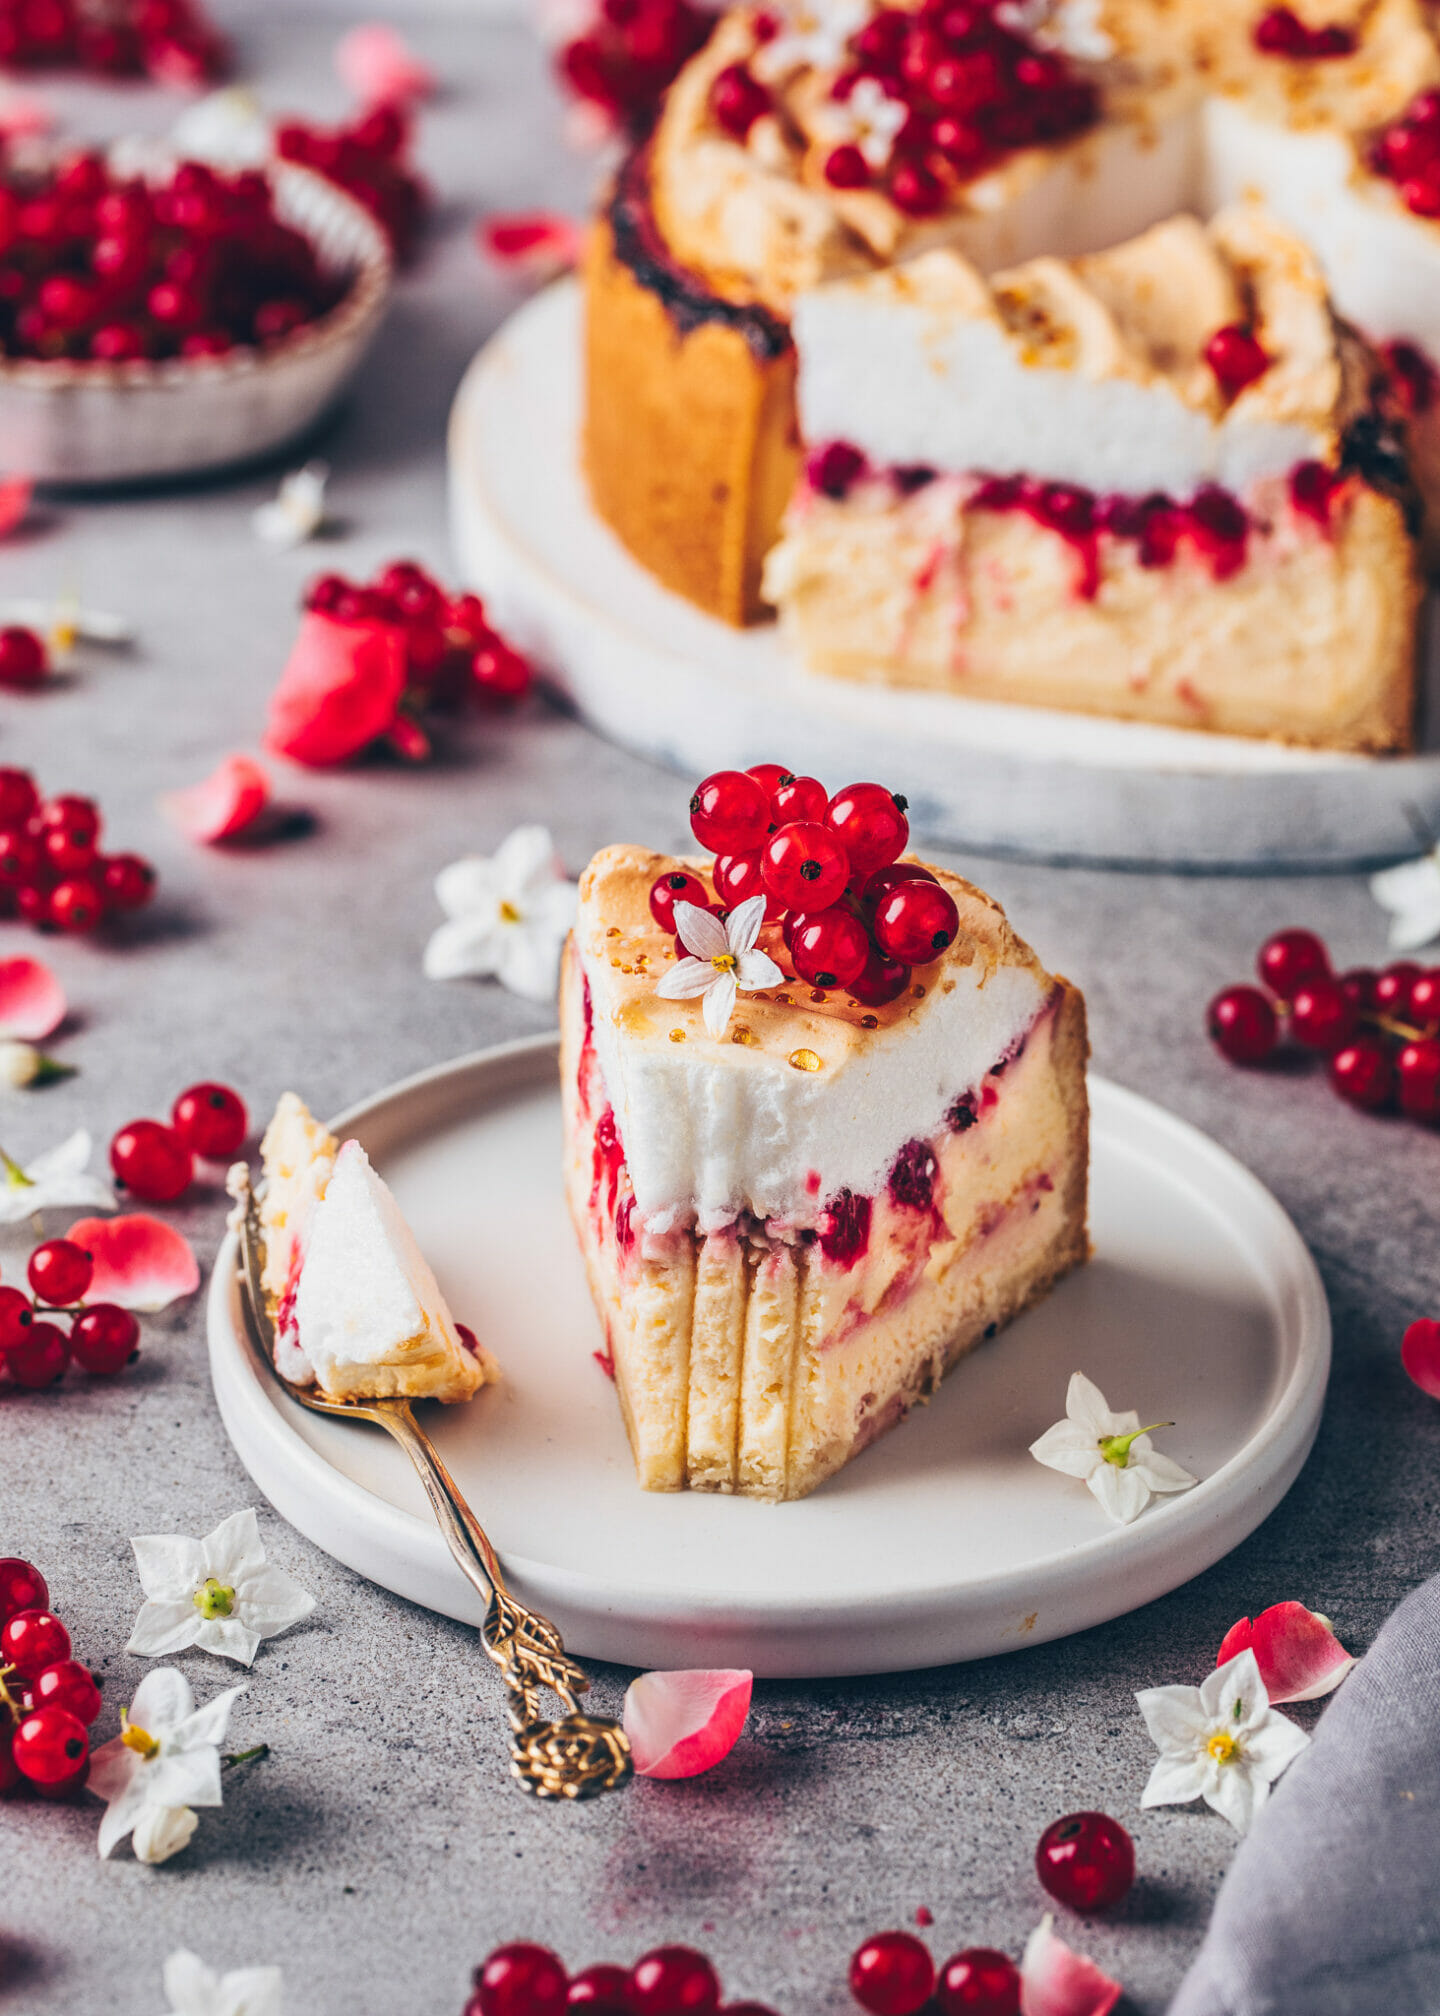 Vegan Cheesecake with Aquafaba Meringue and Red Currants